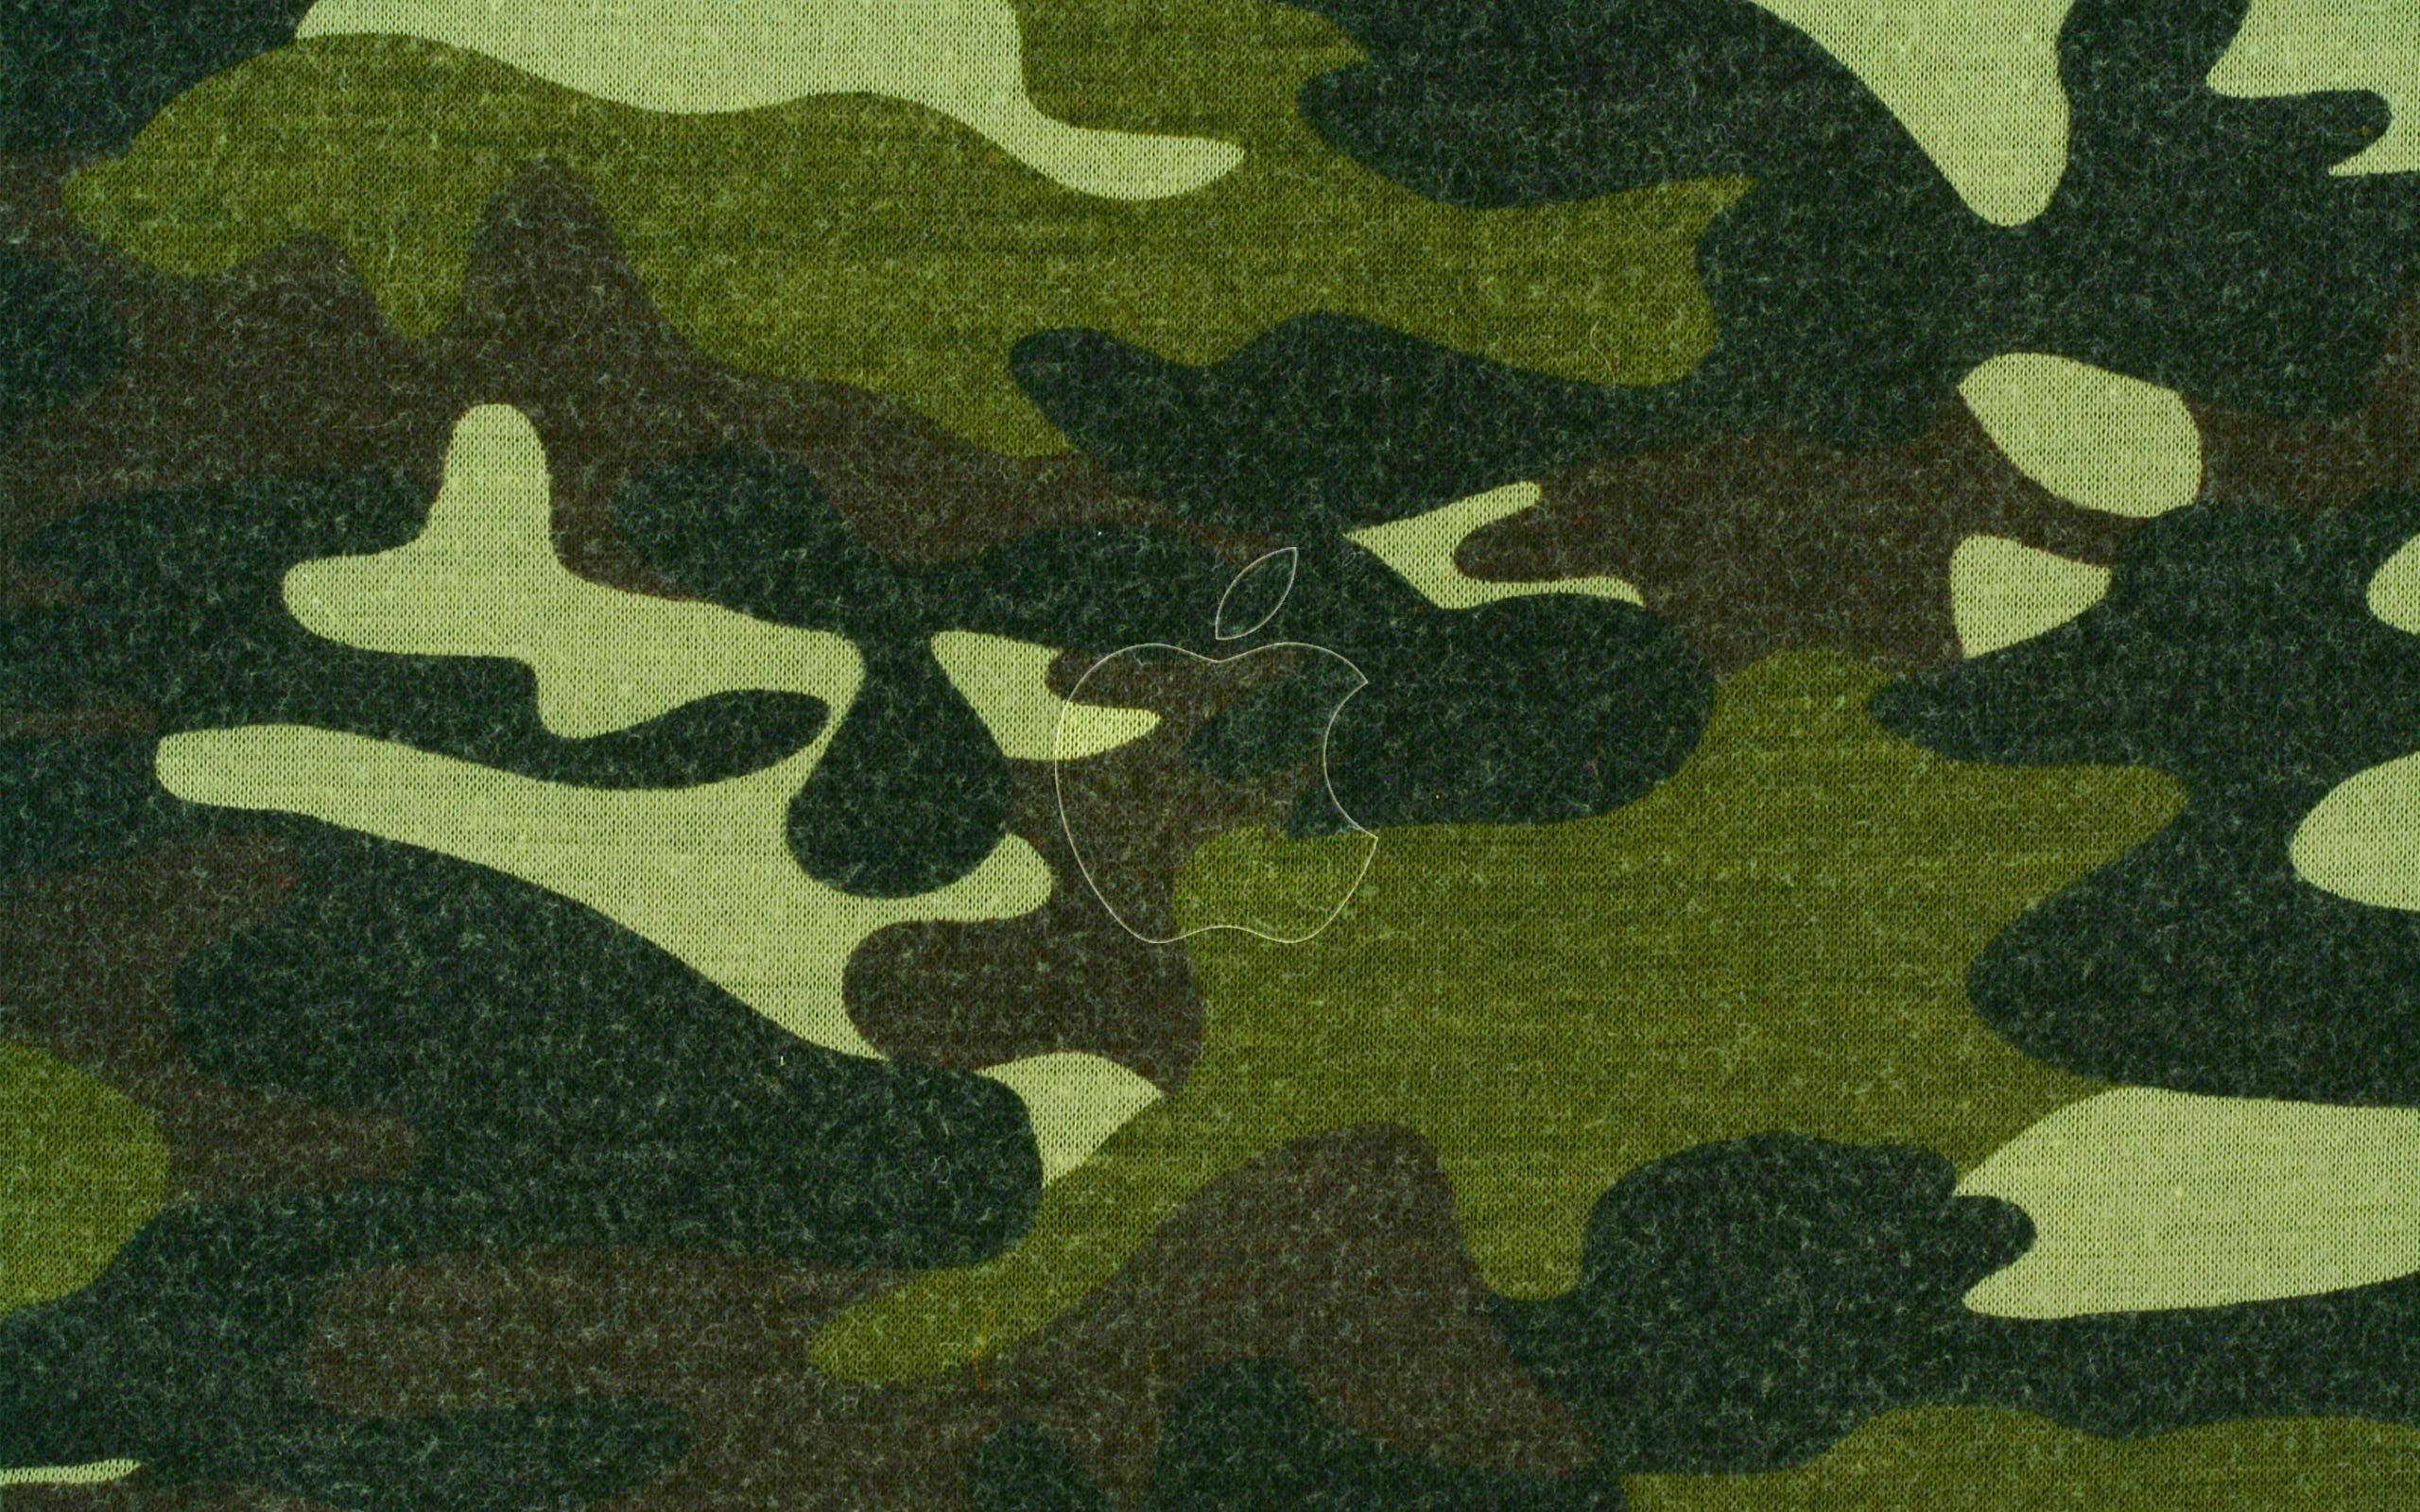 28 Free Camouflage Hd And Desktop Backgrounds: Camouflage Desktop Wallpapers